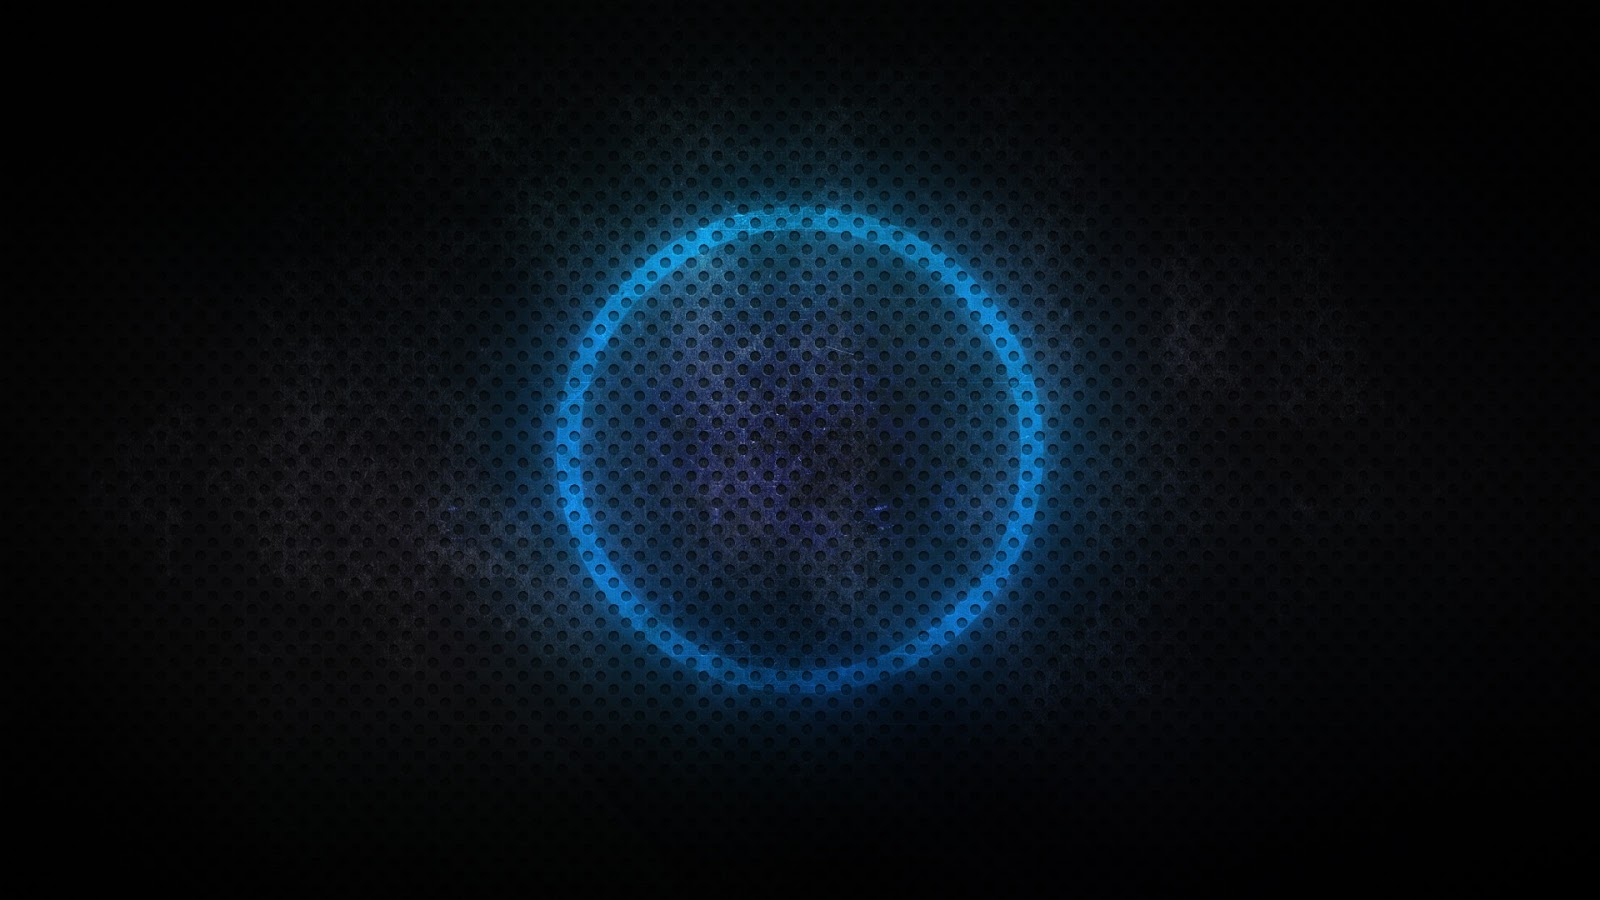 Collection Of Blue Circle Wallpaper On HDWallpapers